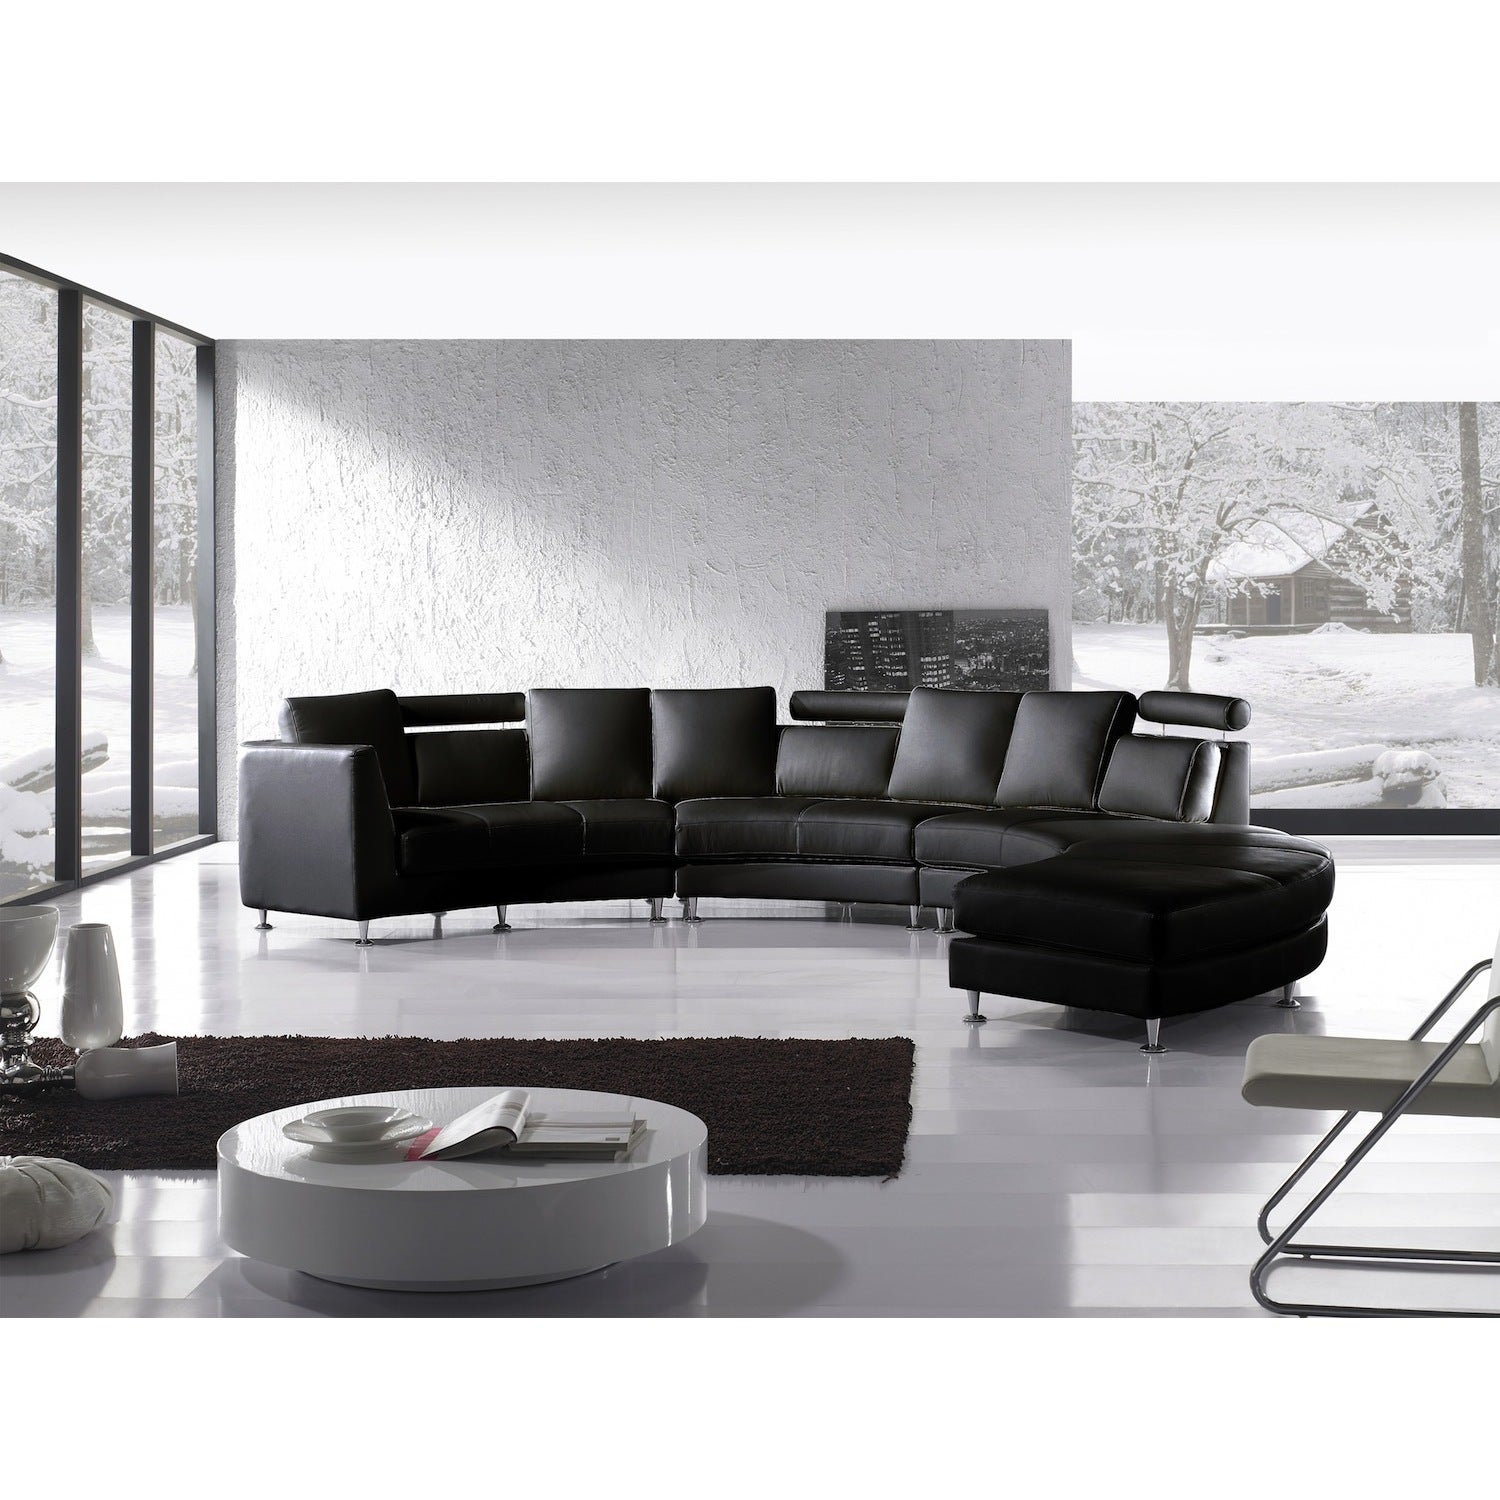 Large Circular Sectional Sofas: Privacy Policy